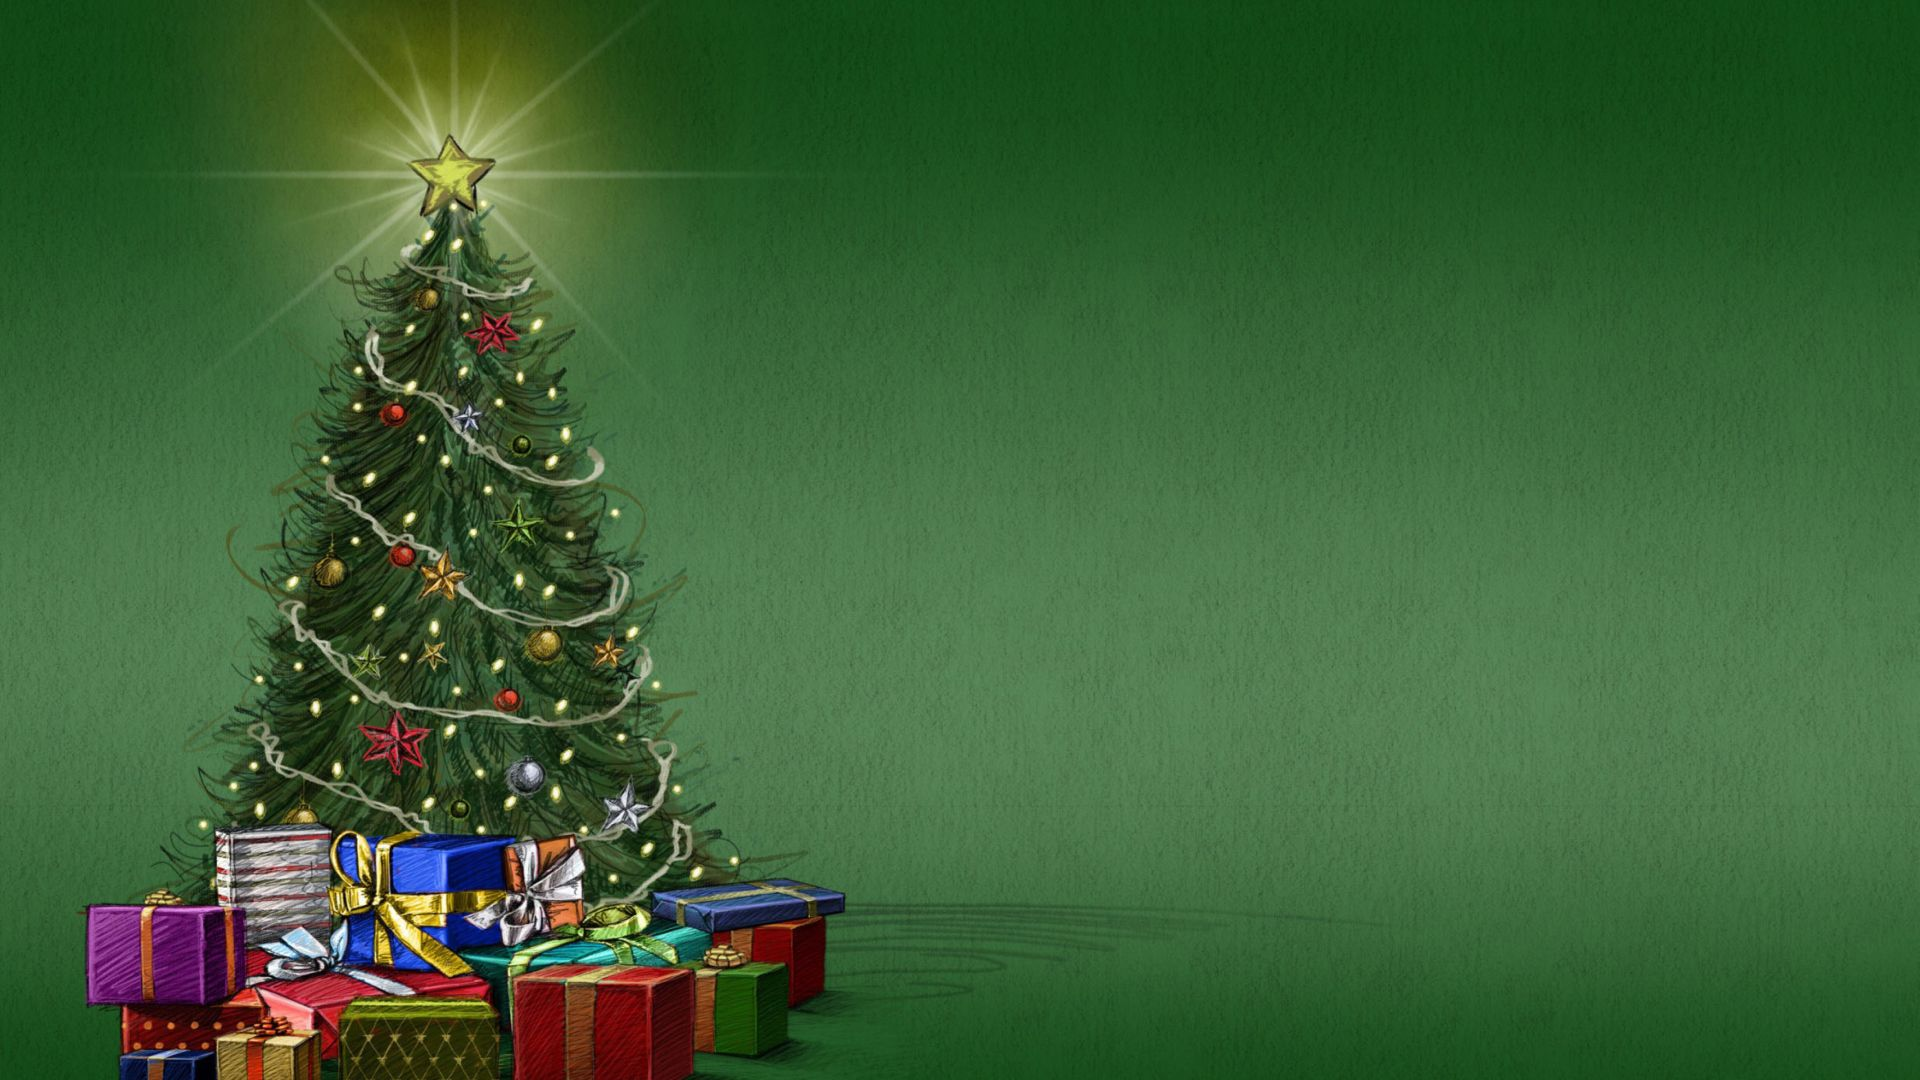 Green Christmas free hd wallpaper